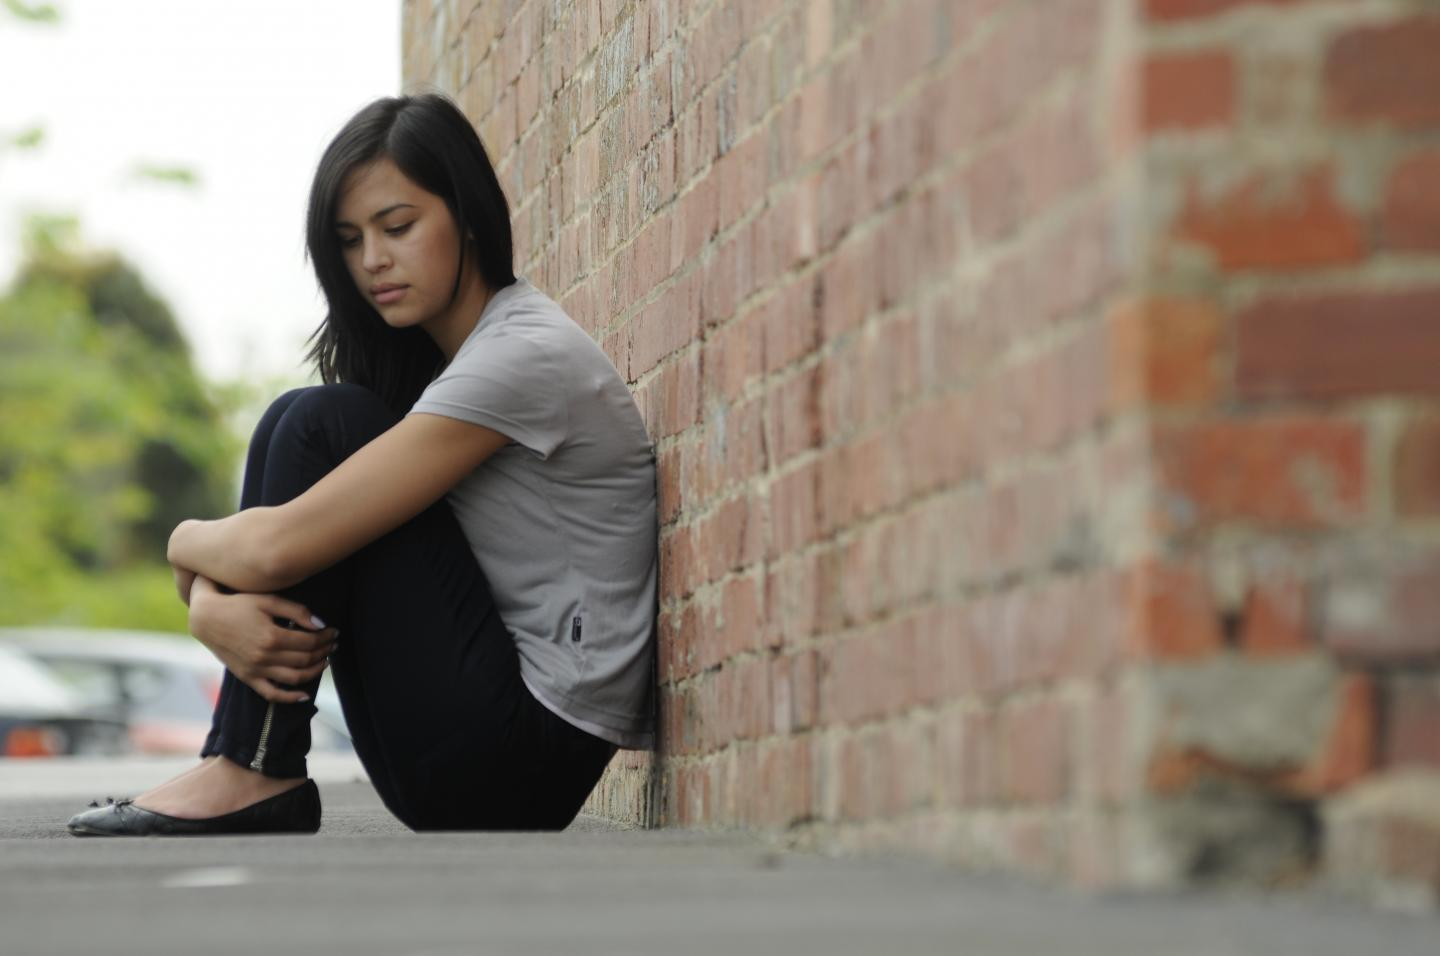 Young person sat curled against a brick wall